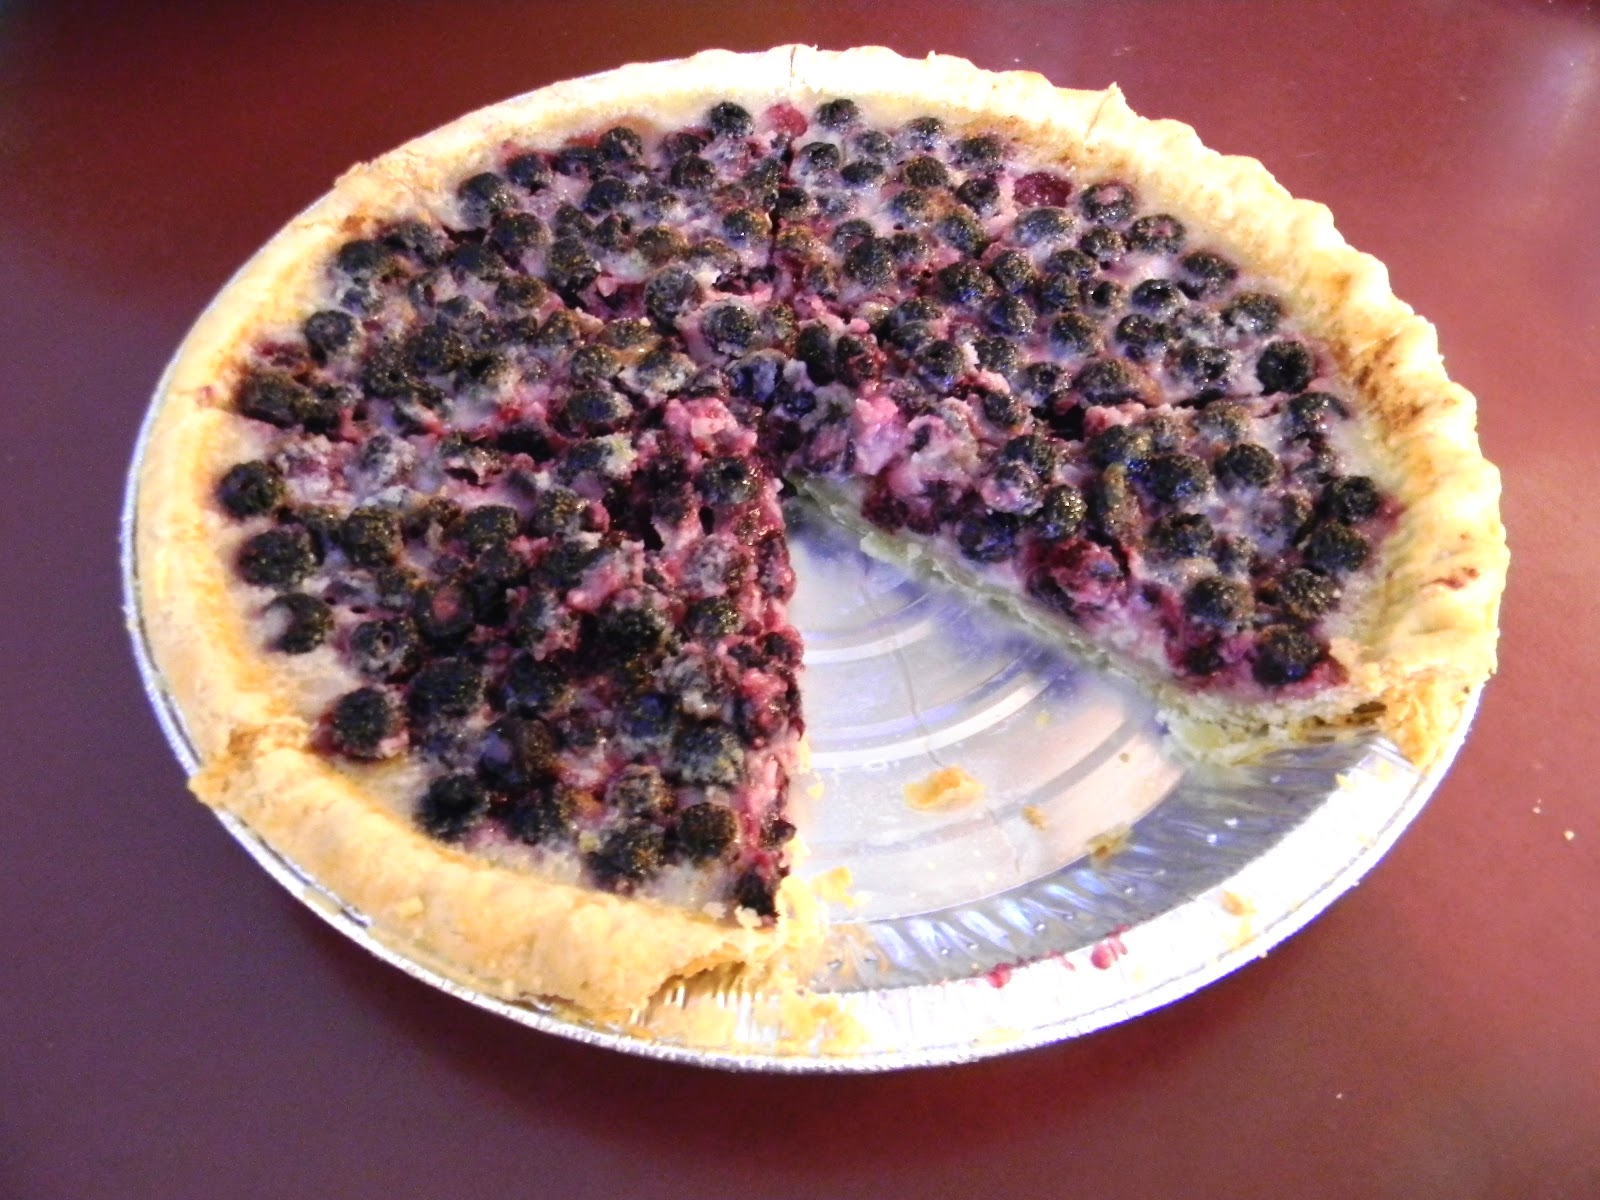 Wallmarks: Black Raspberry Custard Pie with Freshly Picked Berries